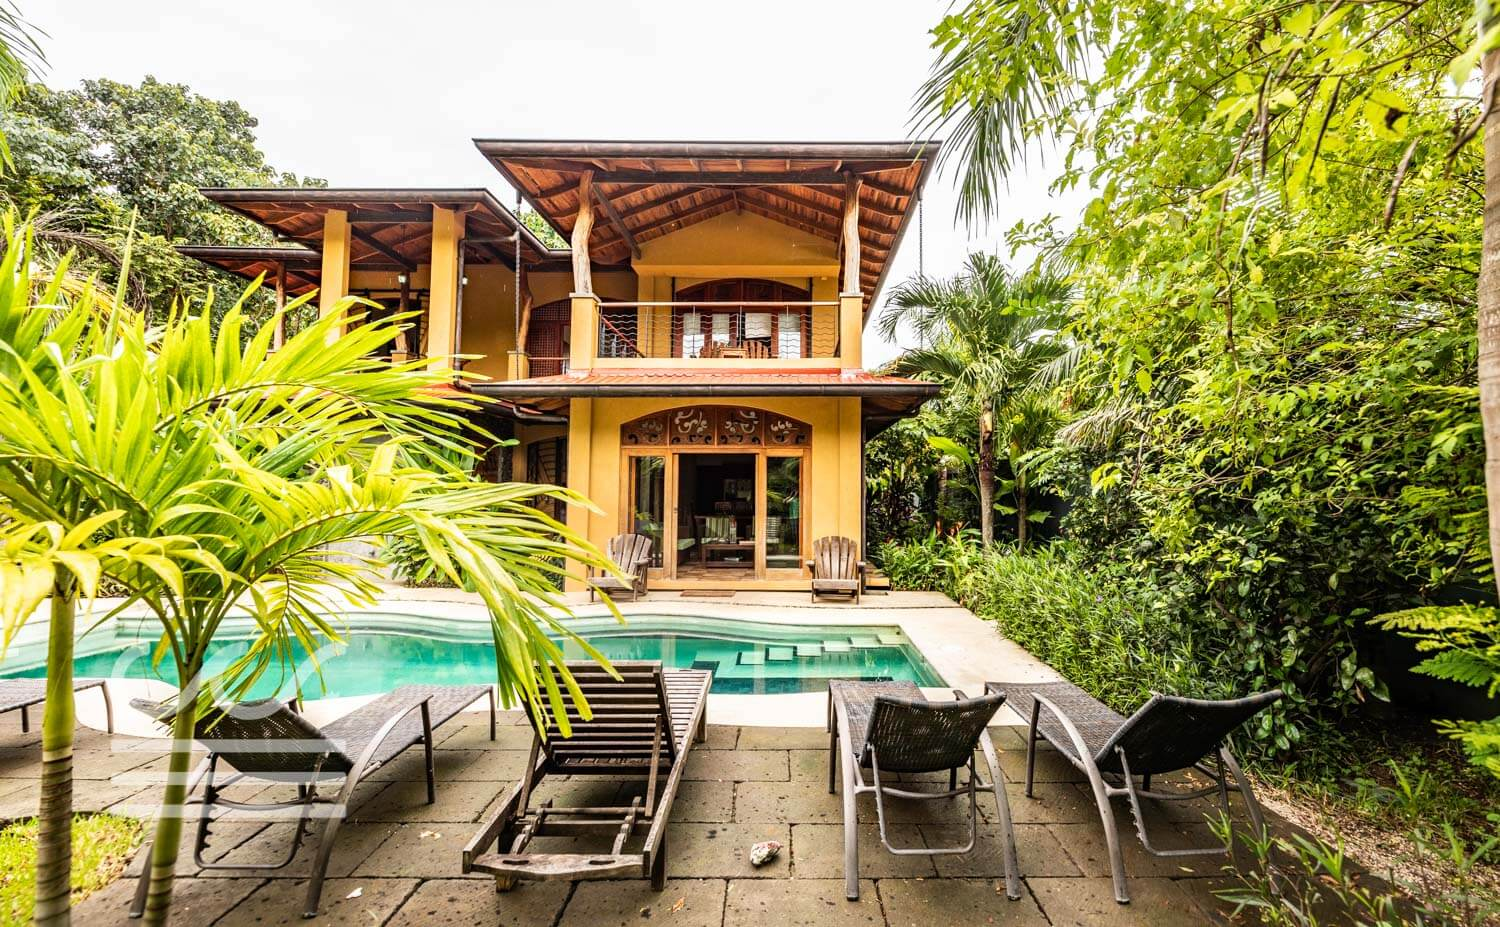 Endless-Summer-Wanderlust-Realty-Real-Estate-Rentals-Nosara-Costa-Rica-9.jpg